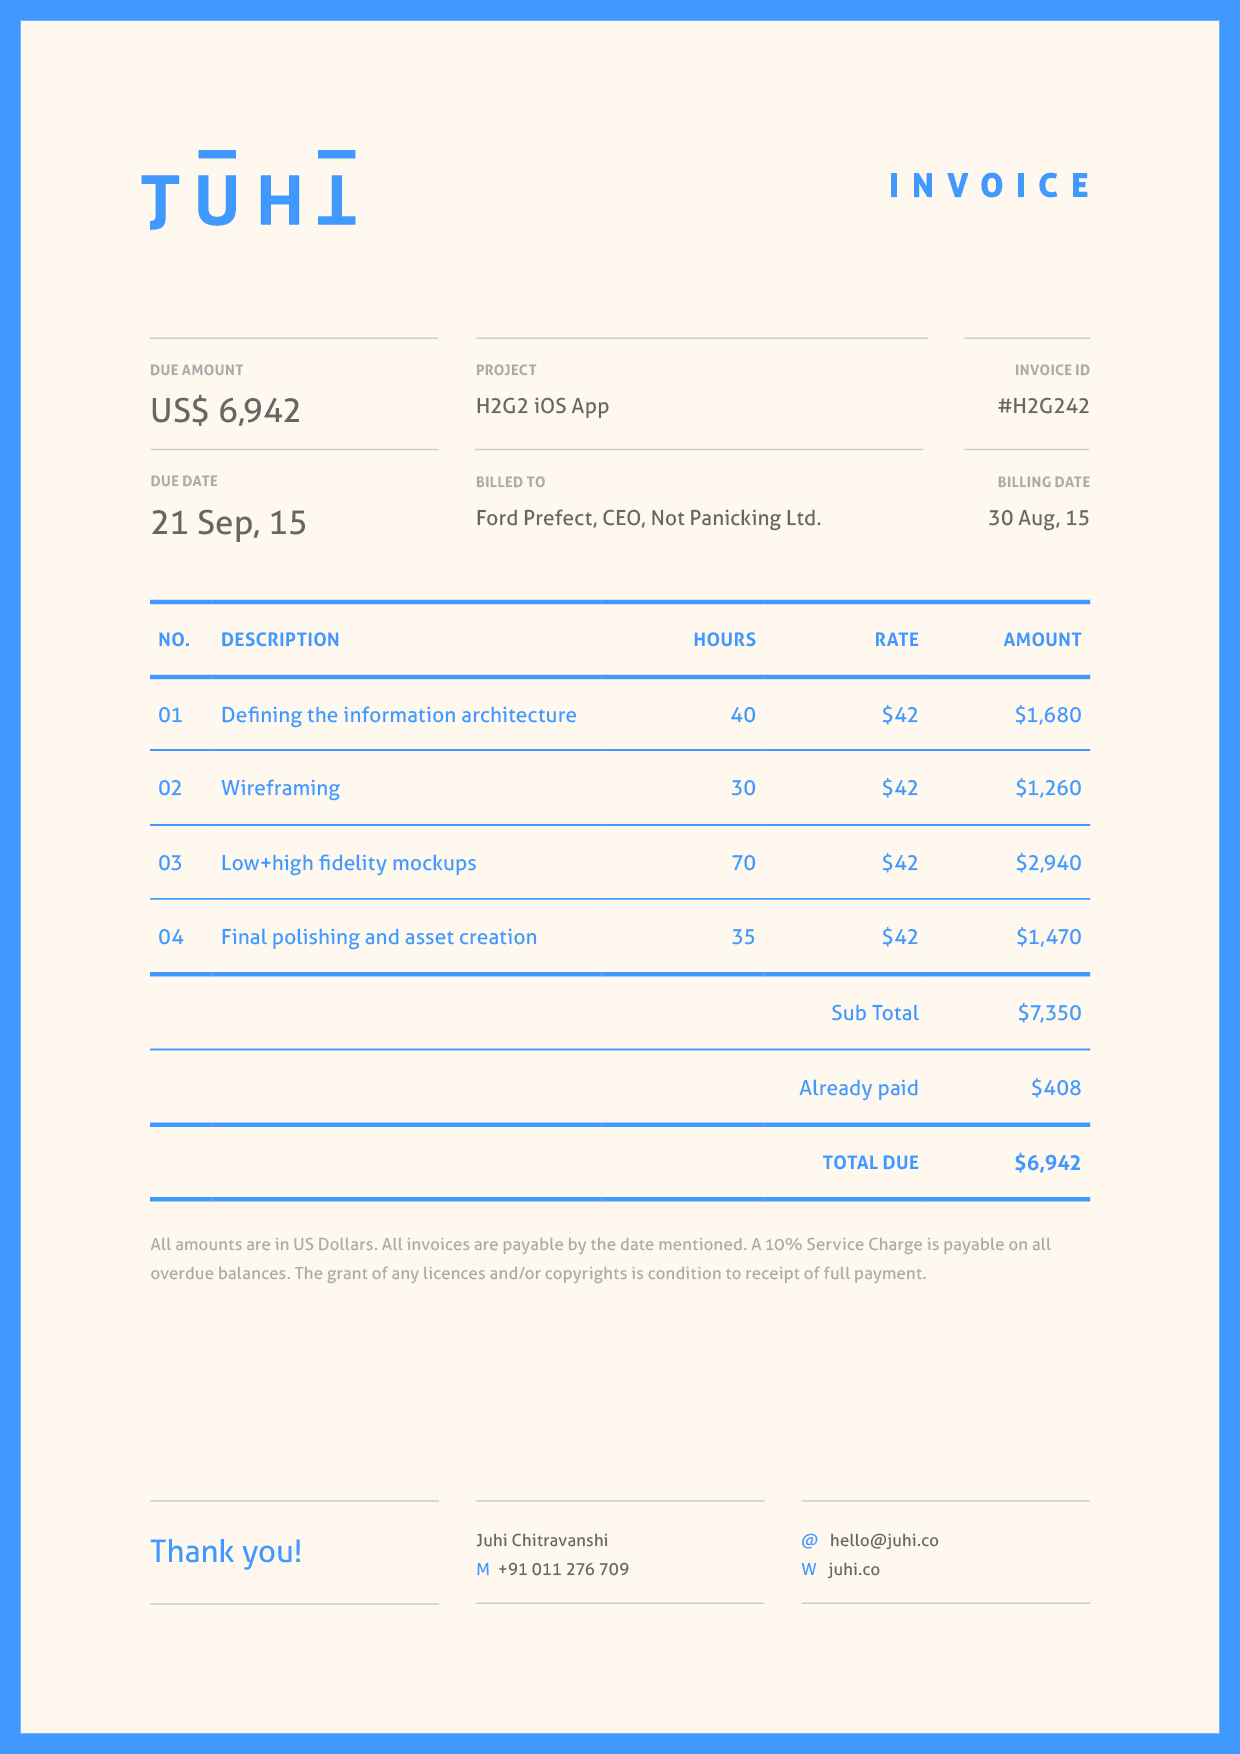 Atvingus  Unique Dont Hold Back On Your Invoice  Inspiring Designs  With Luxury Invoice By Juhi Chitravanshi Follow With Delectable Sale Receipt Template Also Free Sales Receipt Template In Addition Ikea No Receipt And Receipt Stabber As Well As Best Receipt Organizer Additionally Epson Receipt Printer Driver From Inspirationfeedcom With Atvingus  Luxury Dont Hold Back On Your Invoice  Inspiring Designs  With Delectable Invoice By Juhi Chitravanshi Follow And Unique Sale Receipt Template Also Free Sales Receipt Template In Addition Ikea No Receipt From Inspirationfeedcom